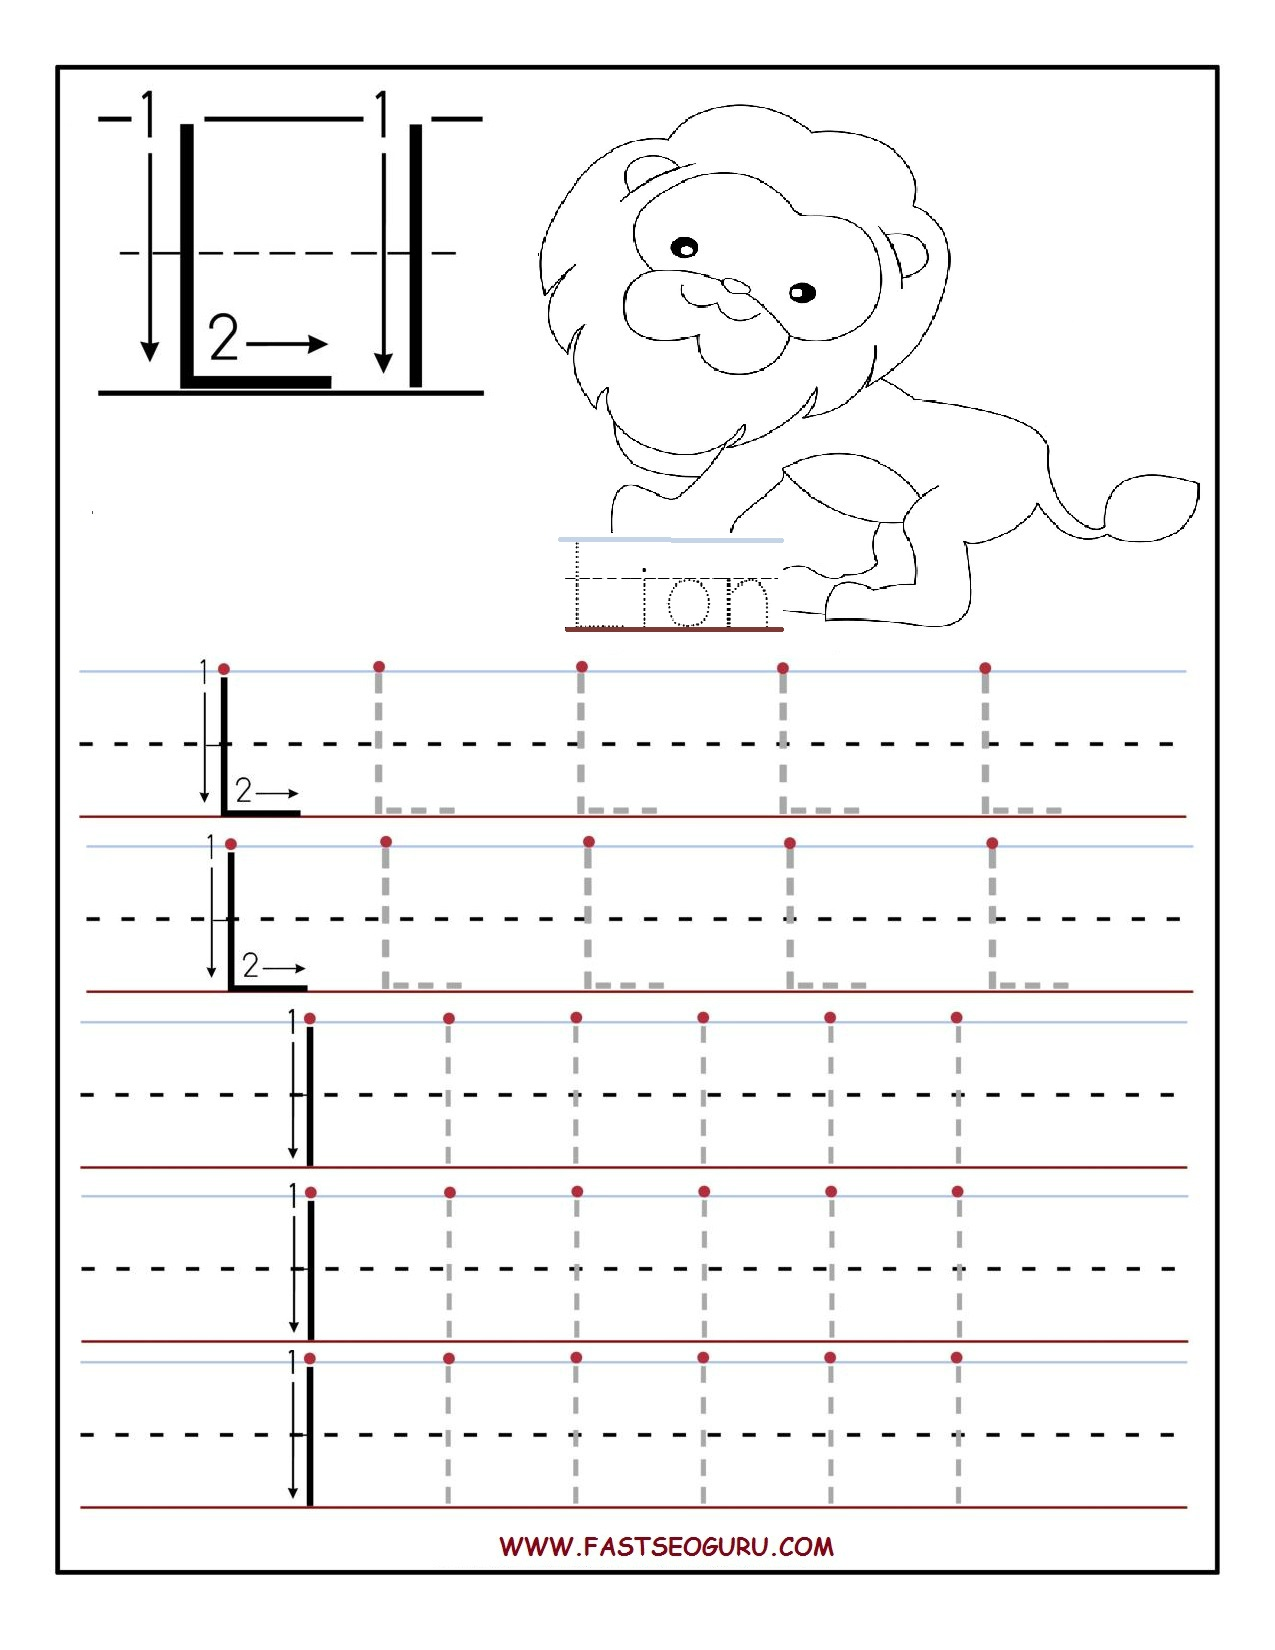 Preschool Printables Pinterestcom